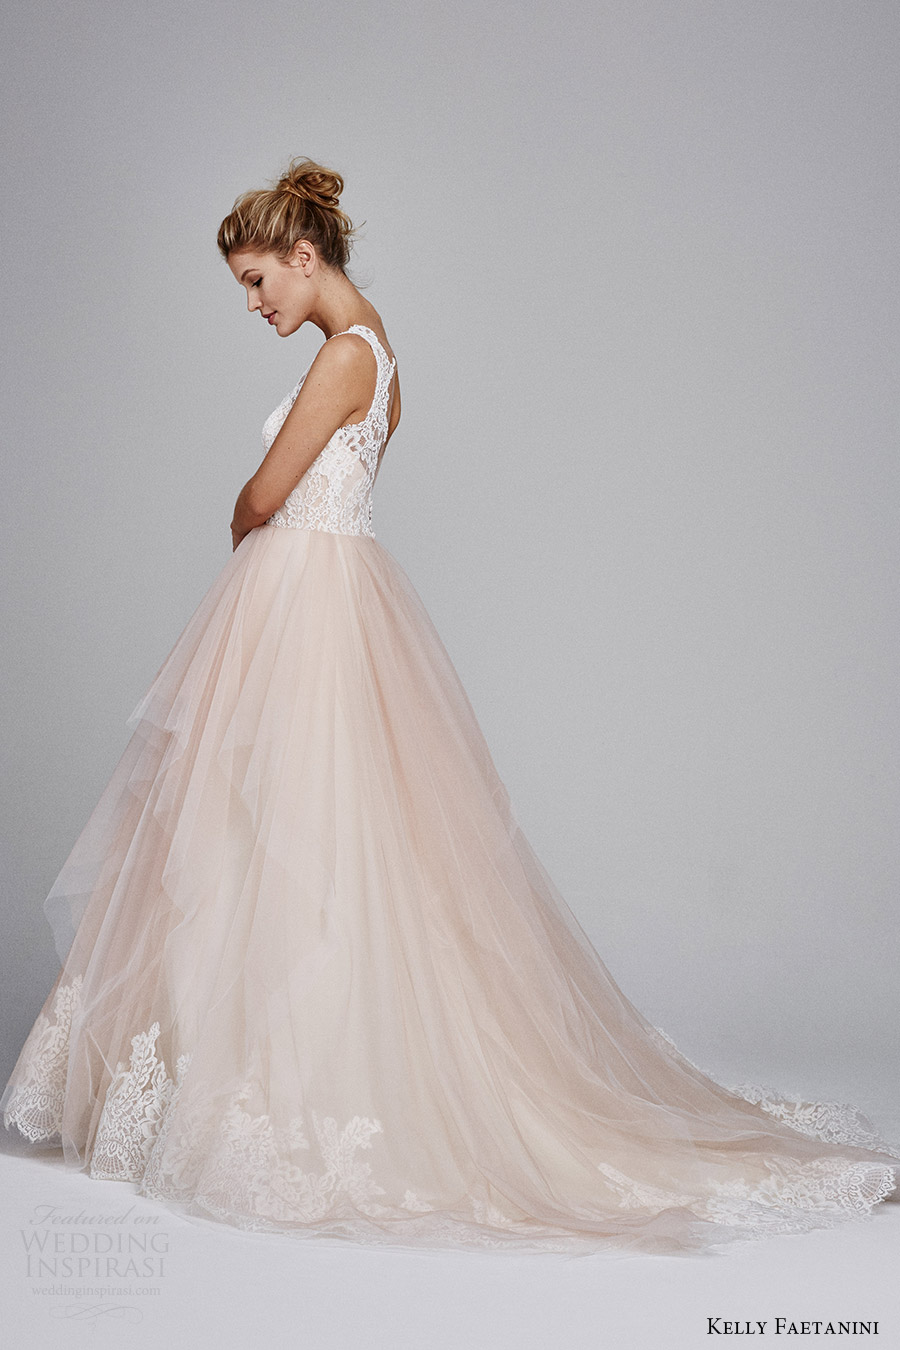 kelly faetanini fall 2017 sleeveless sweetheart lace bodice aline wedding dress (azalea) sv blush skirt lace hem train